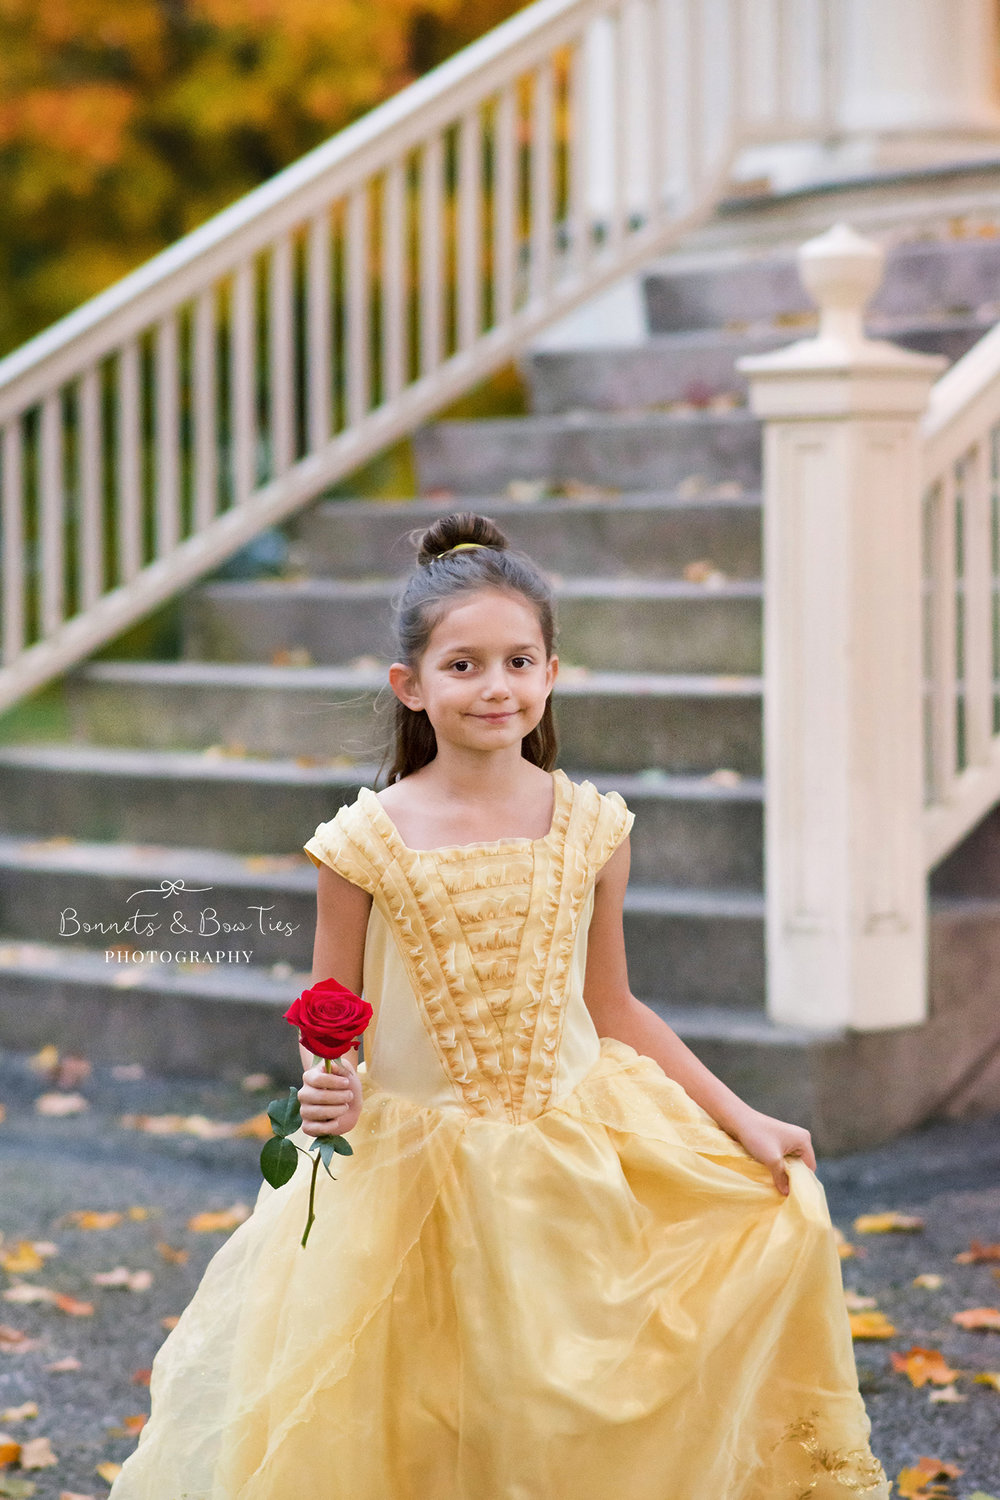 Belle costume for Halloween.jpg